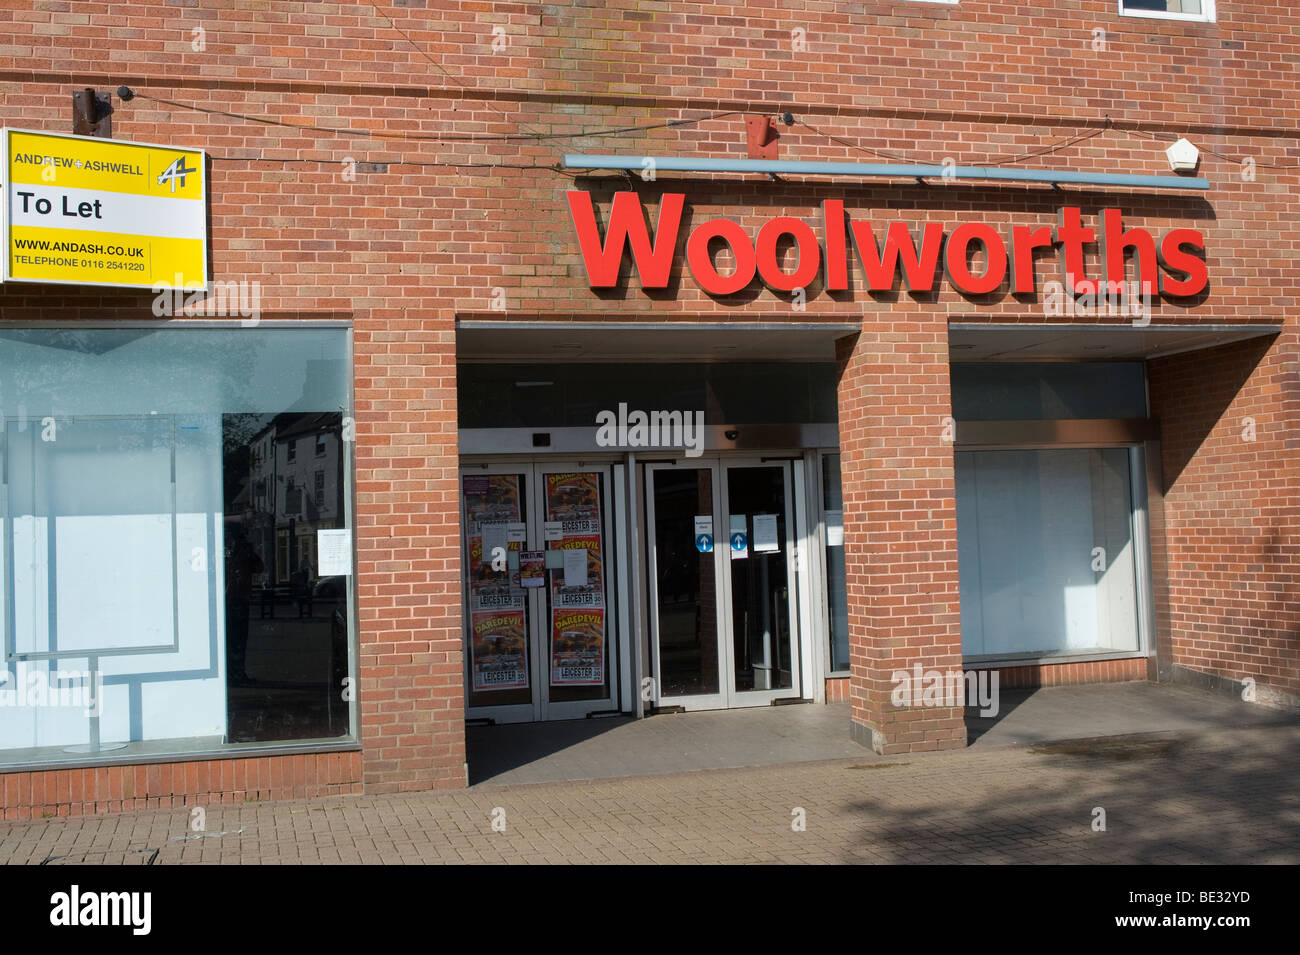 The sad sight of an empty Woolworths store following the closure of the retail chain at the end of 2008. - Stock Image